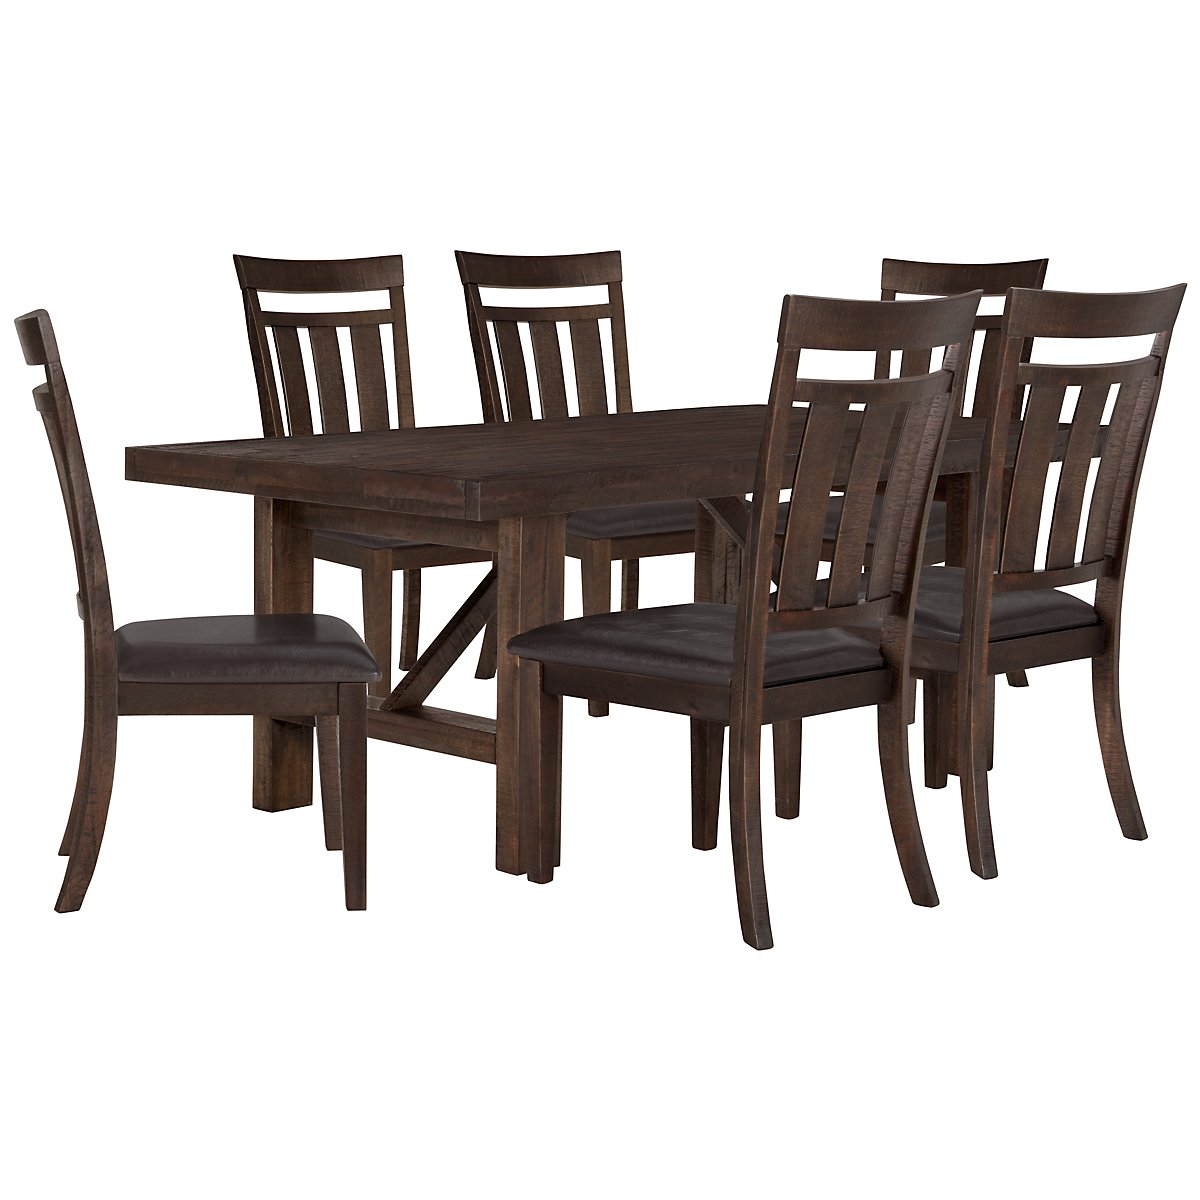 Kona Grove Dark Tone Wood Table & 4 Wood Chairs